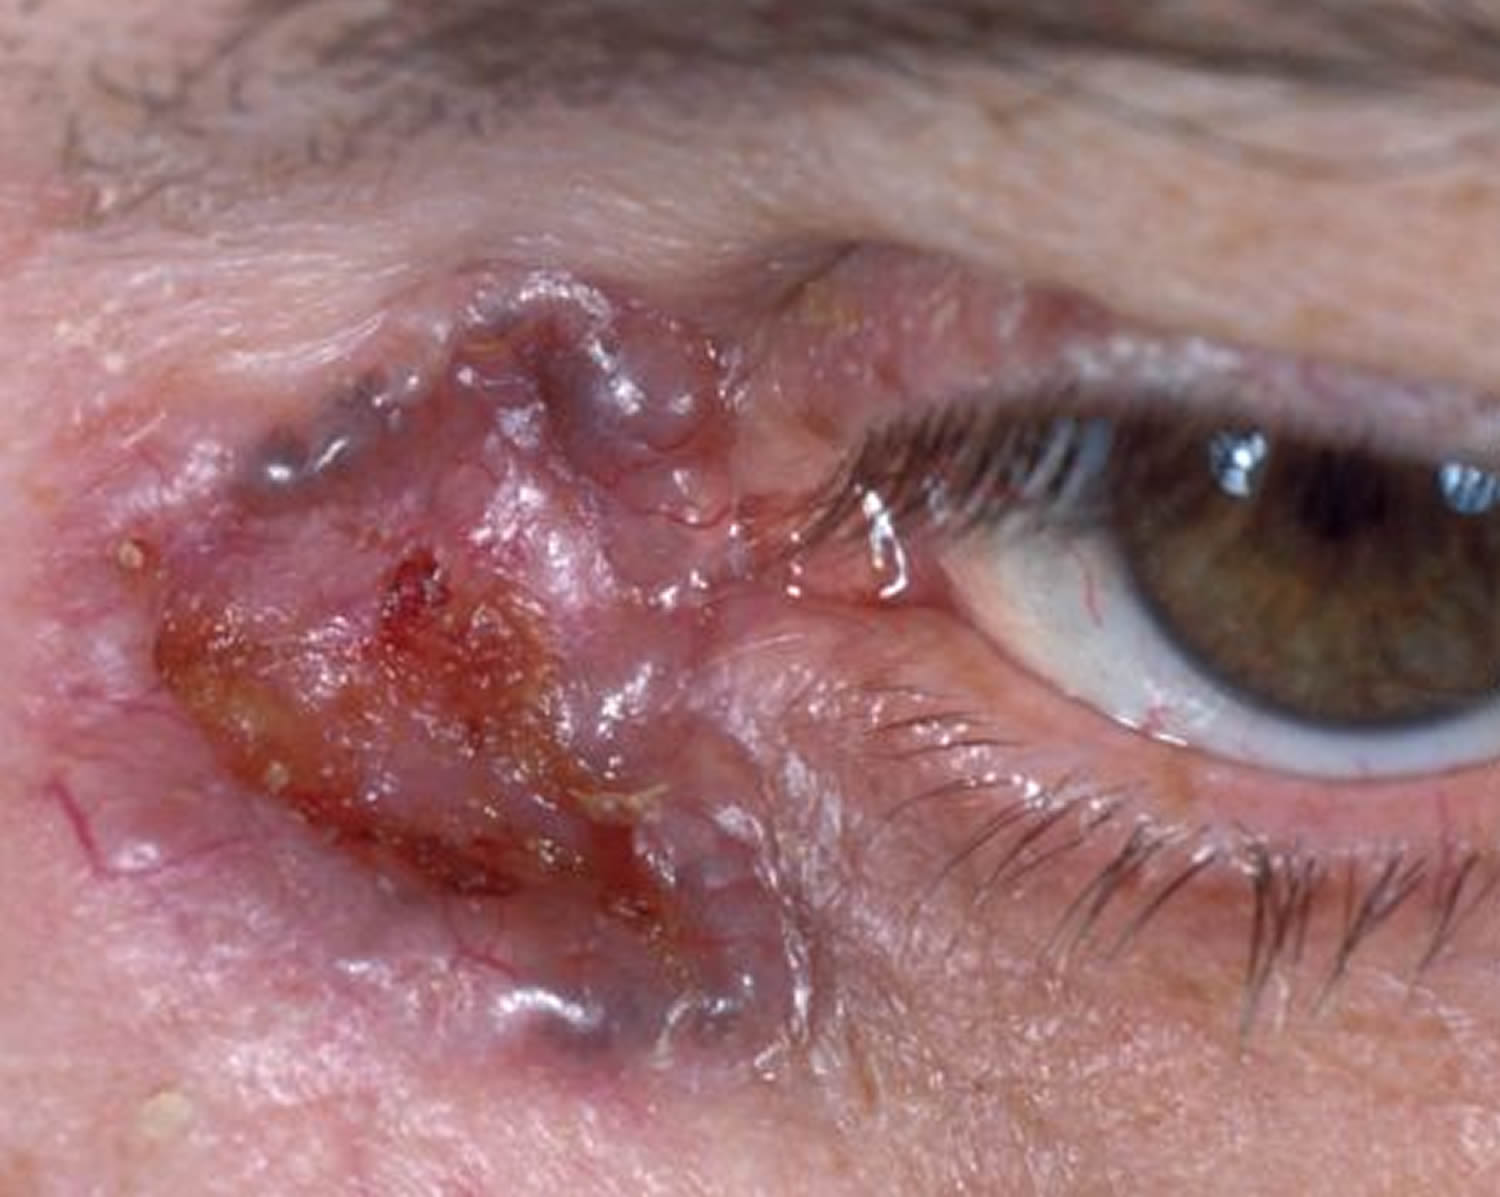 basal cell carcinoma - untreated